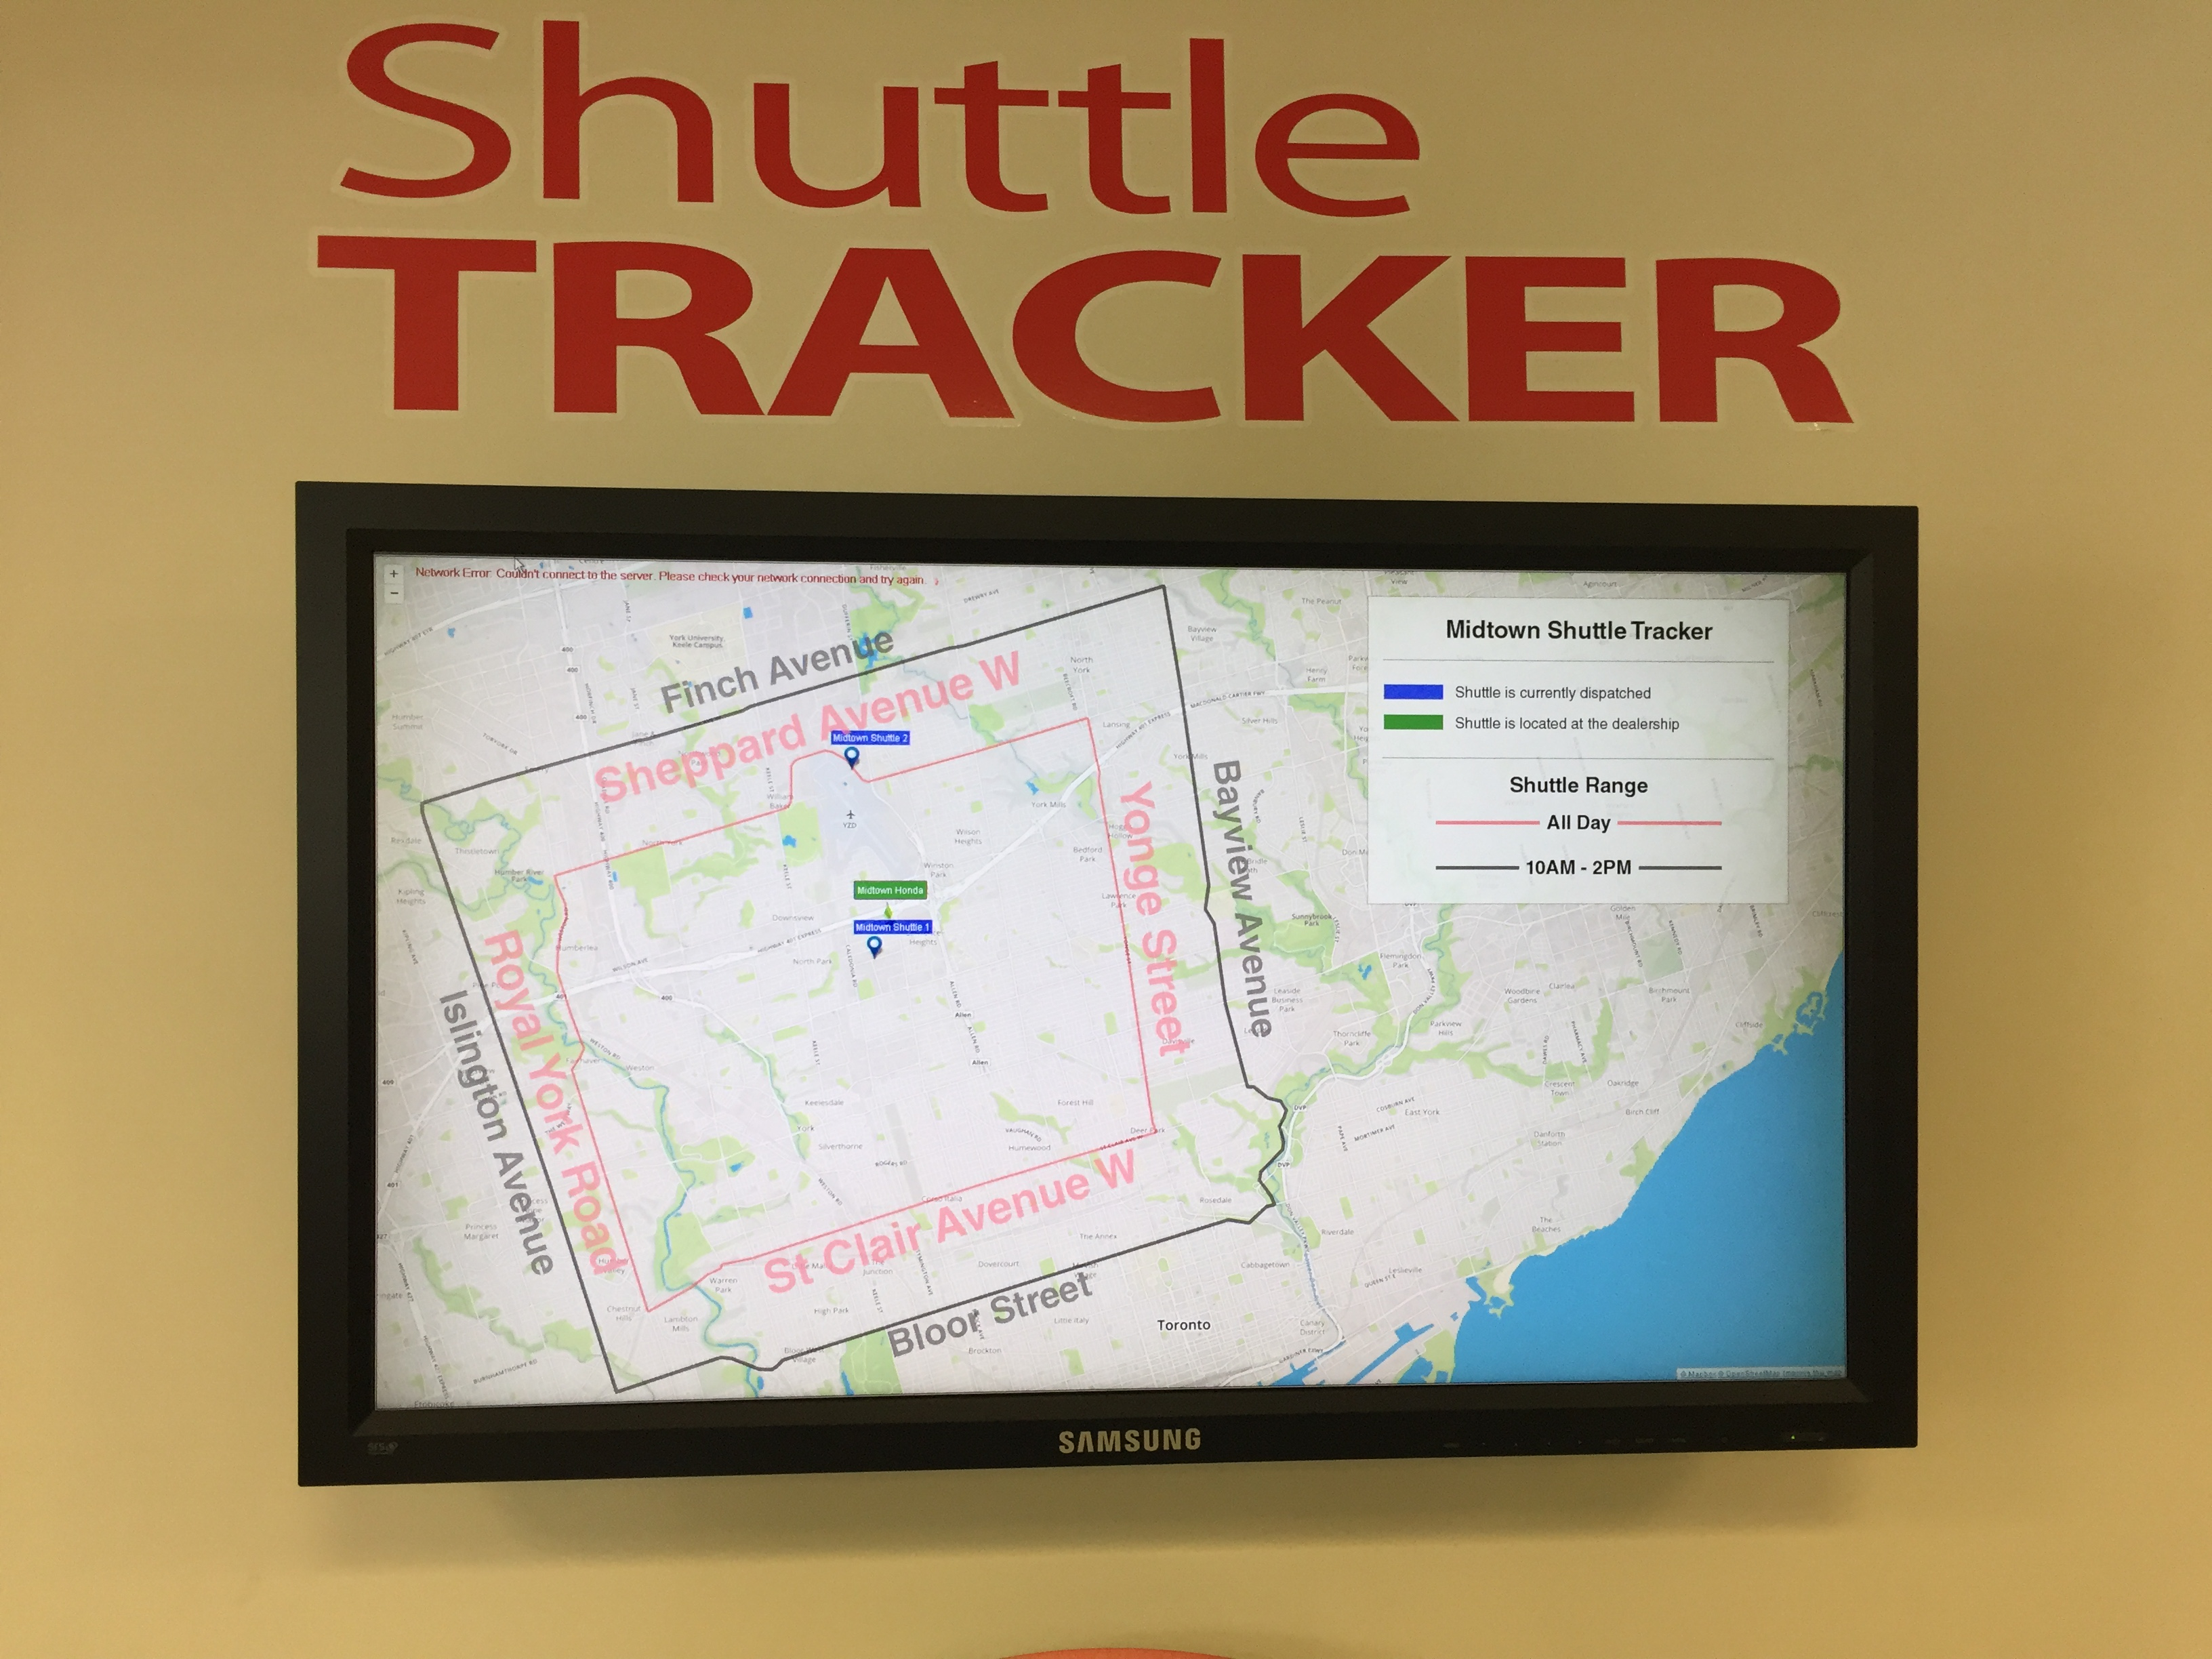 Shuttle Tracker - display for customer viewing